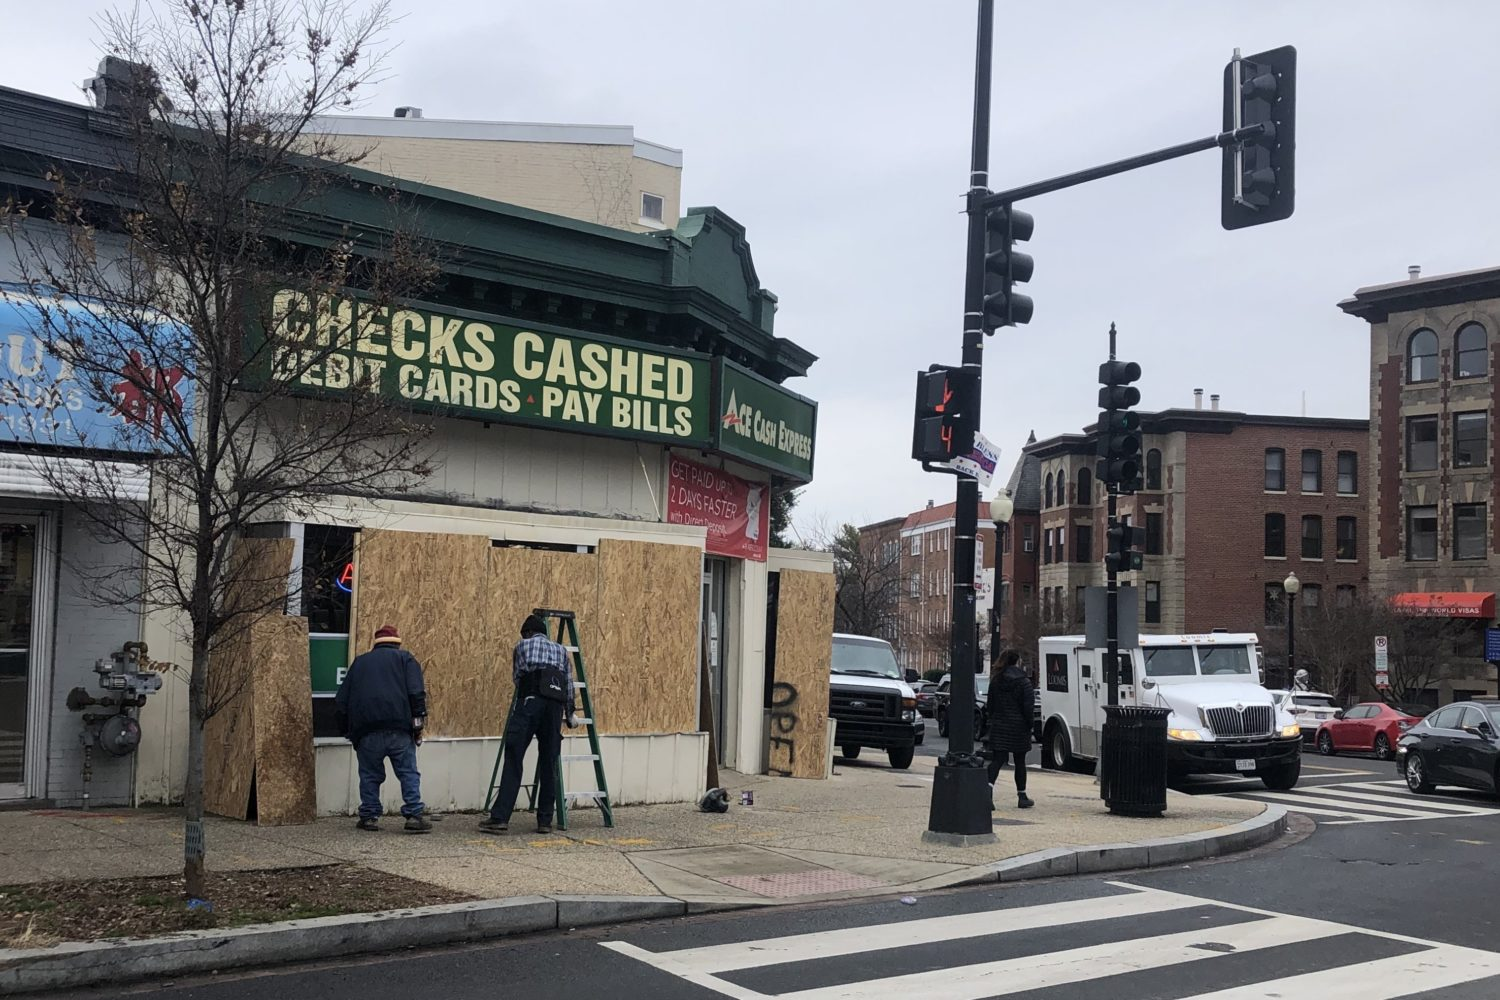 A boarded-up shop in Adams Morgan. Photo by Anna Spiegel.